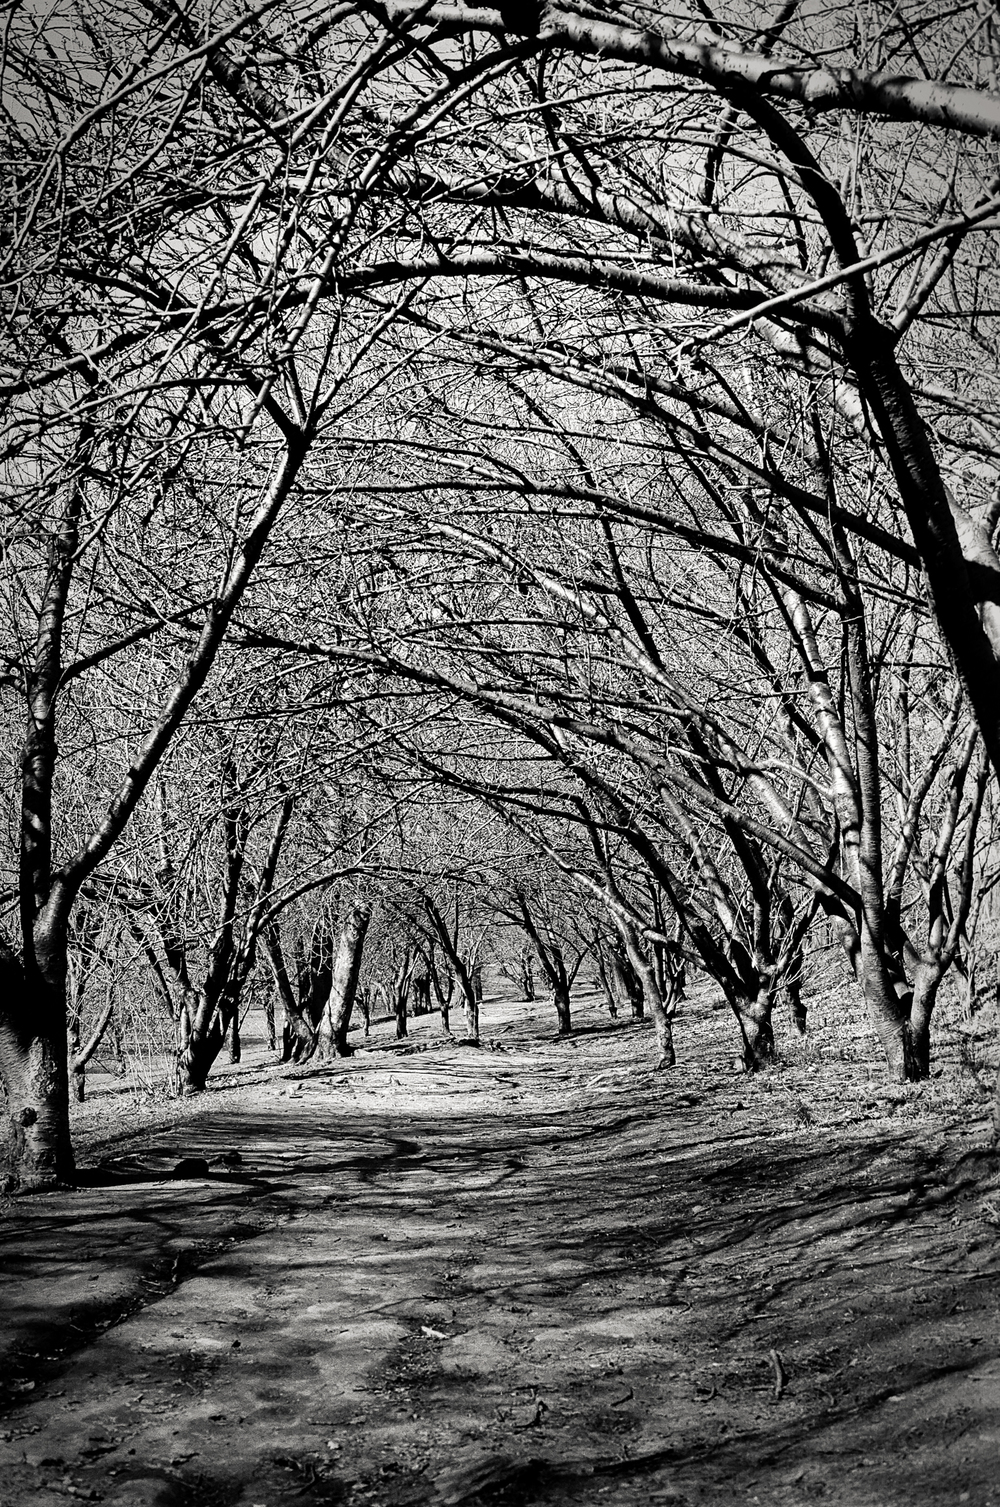 canopy of trees, Central Park, NY 1997.